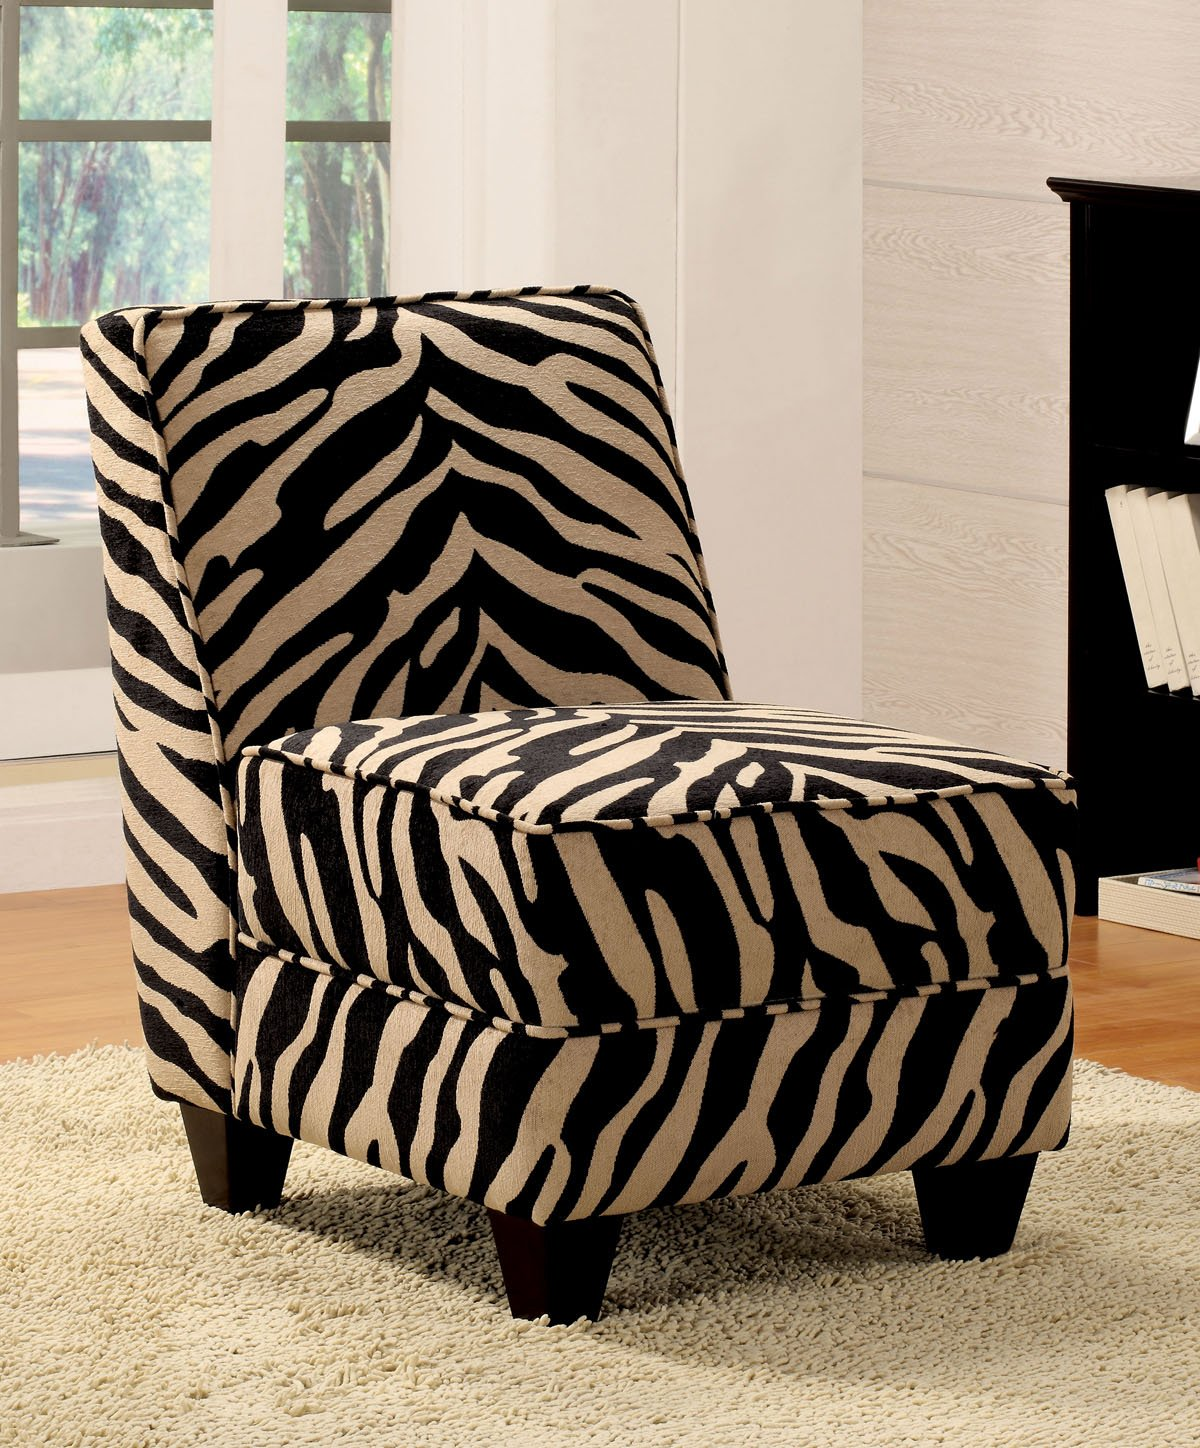 Zebra Print Chair For Sale The House Decorating